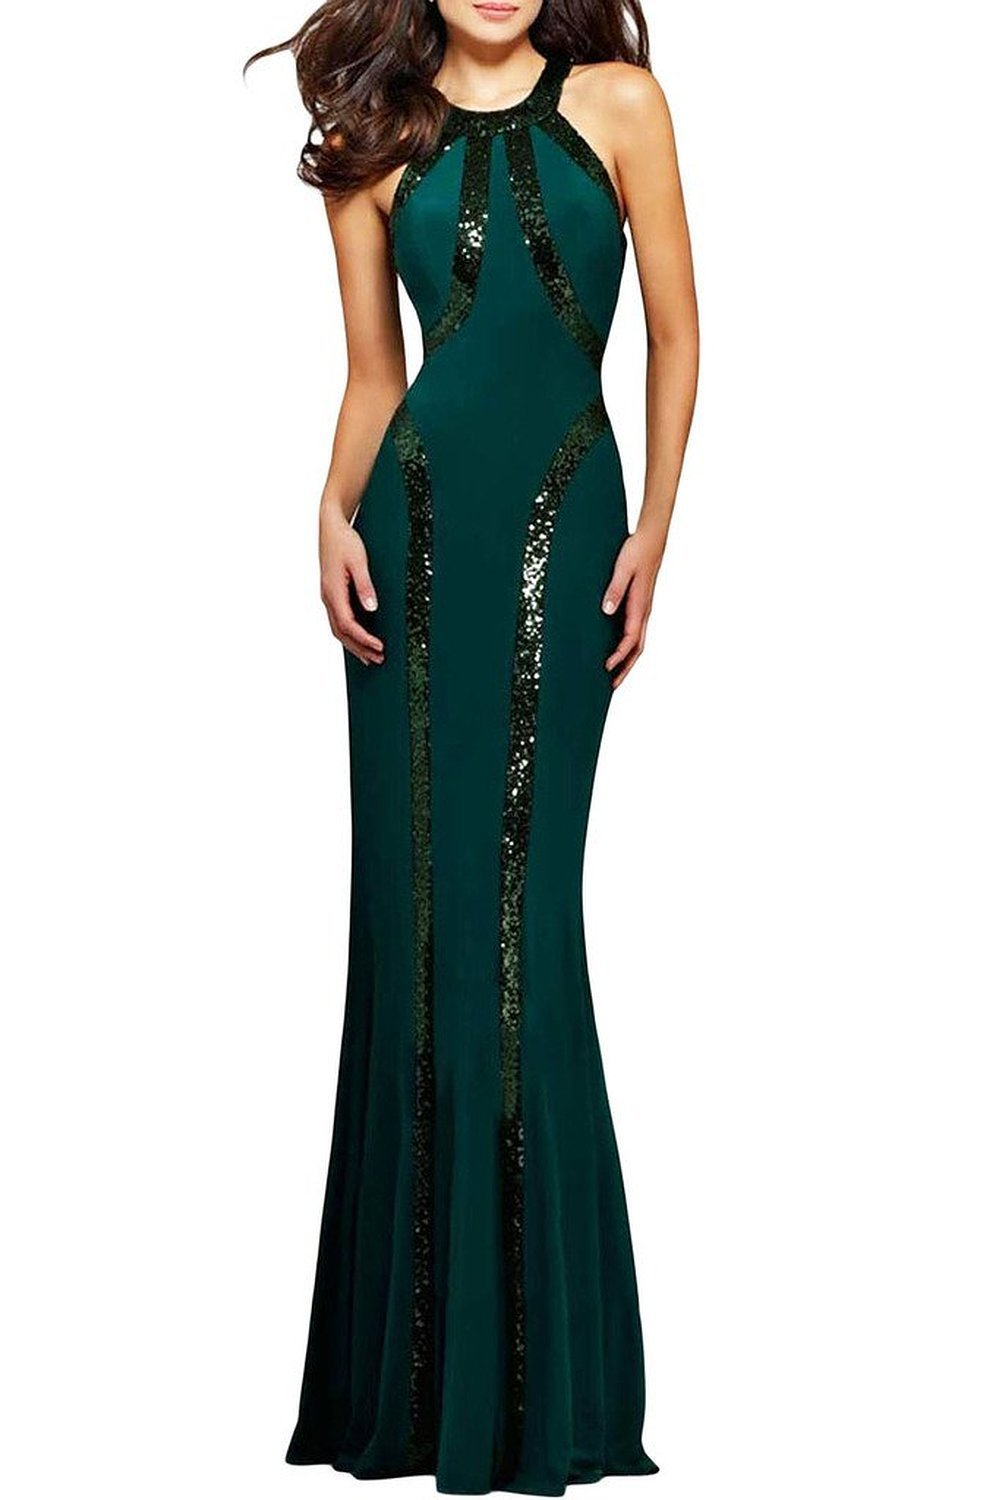 JINSEY + Sequin Trim Black Jersey Gown Maxi Dress Green